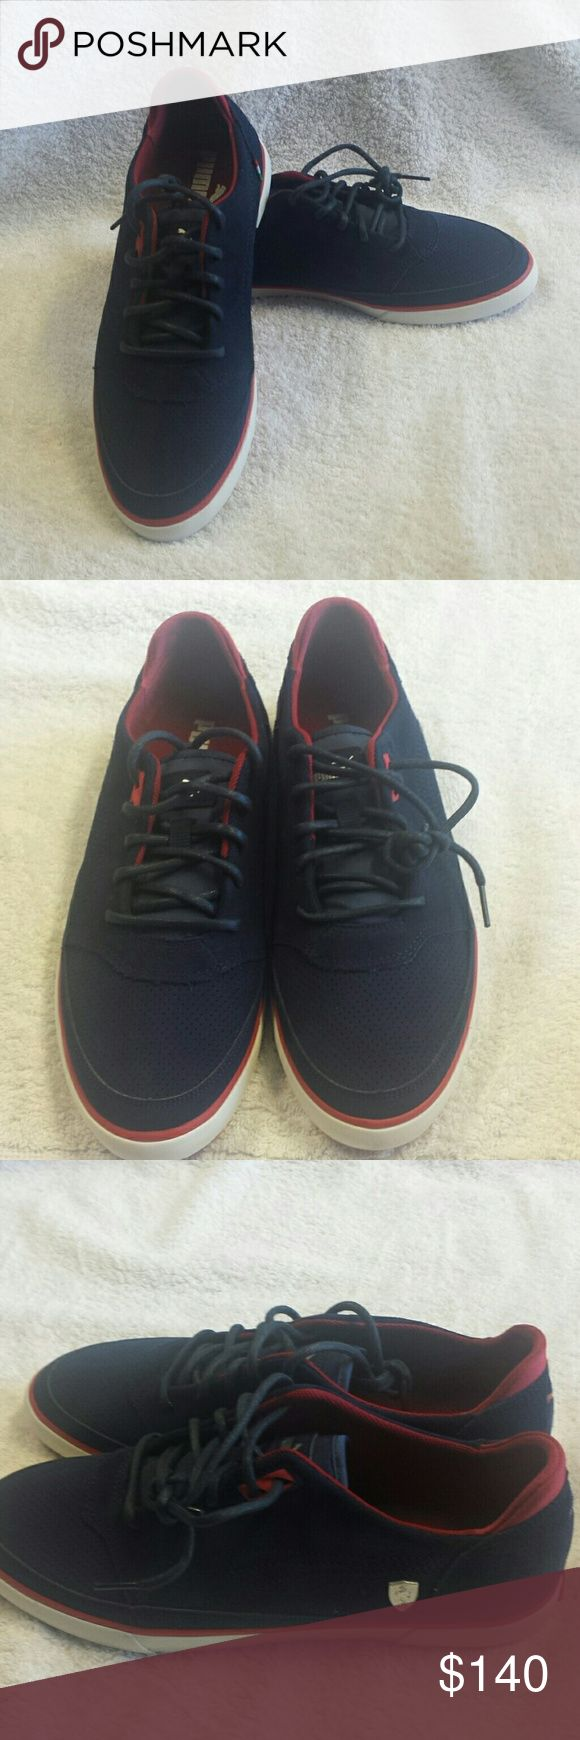 PUMA FERRARI VULCANIZED MEN'S SHOES Product on hand.  Brand new unused ship without the original box Puma Shoes Sneakers